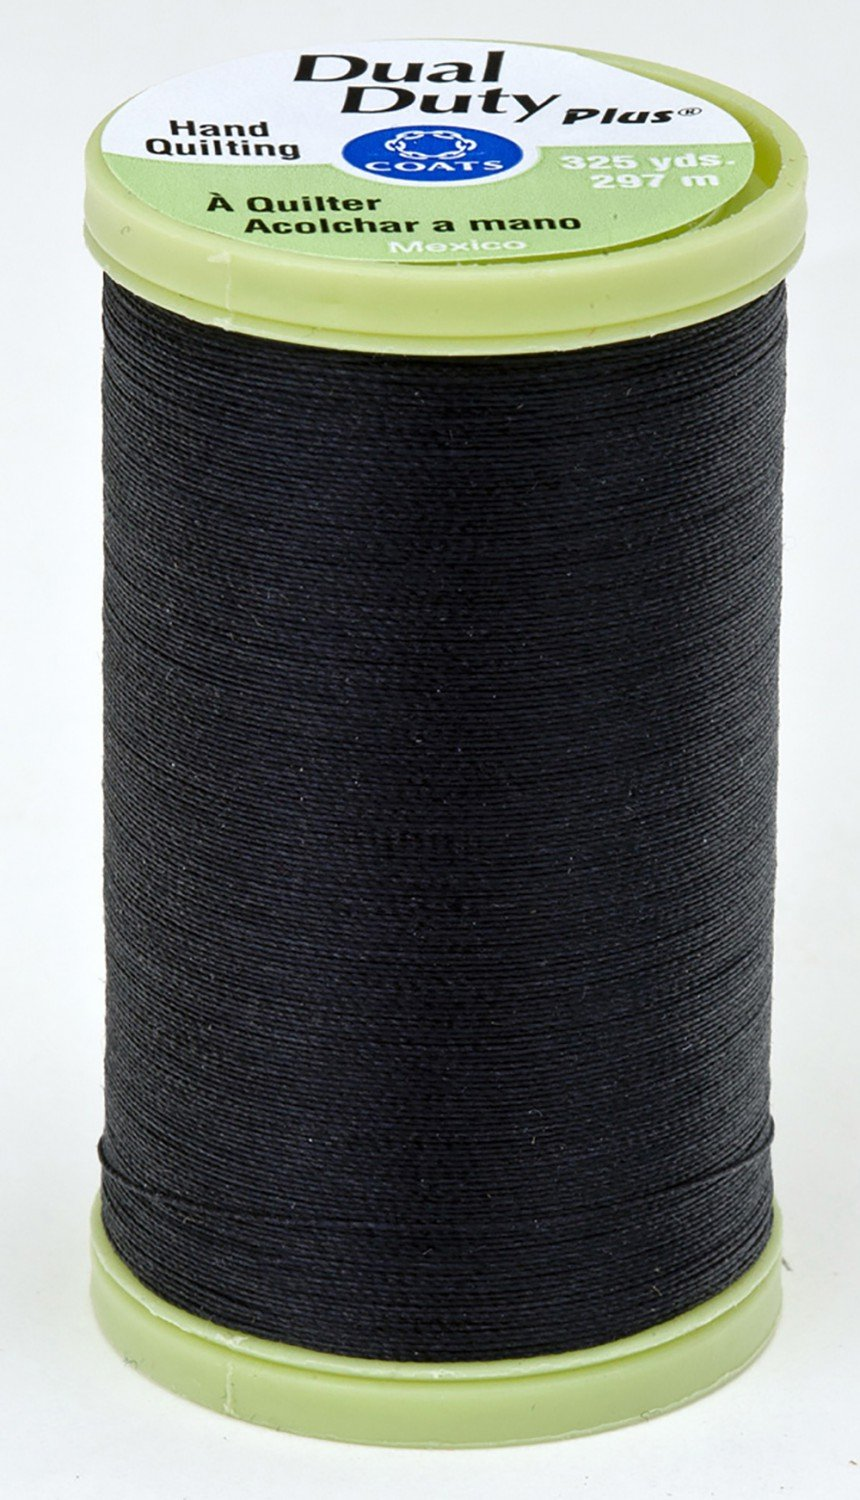 Coats & Clark - Dual Duty Plus Hand Quilting Thread - 325 yds Black - S9600900